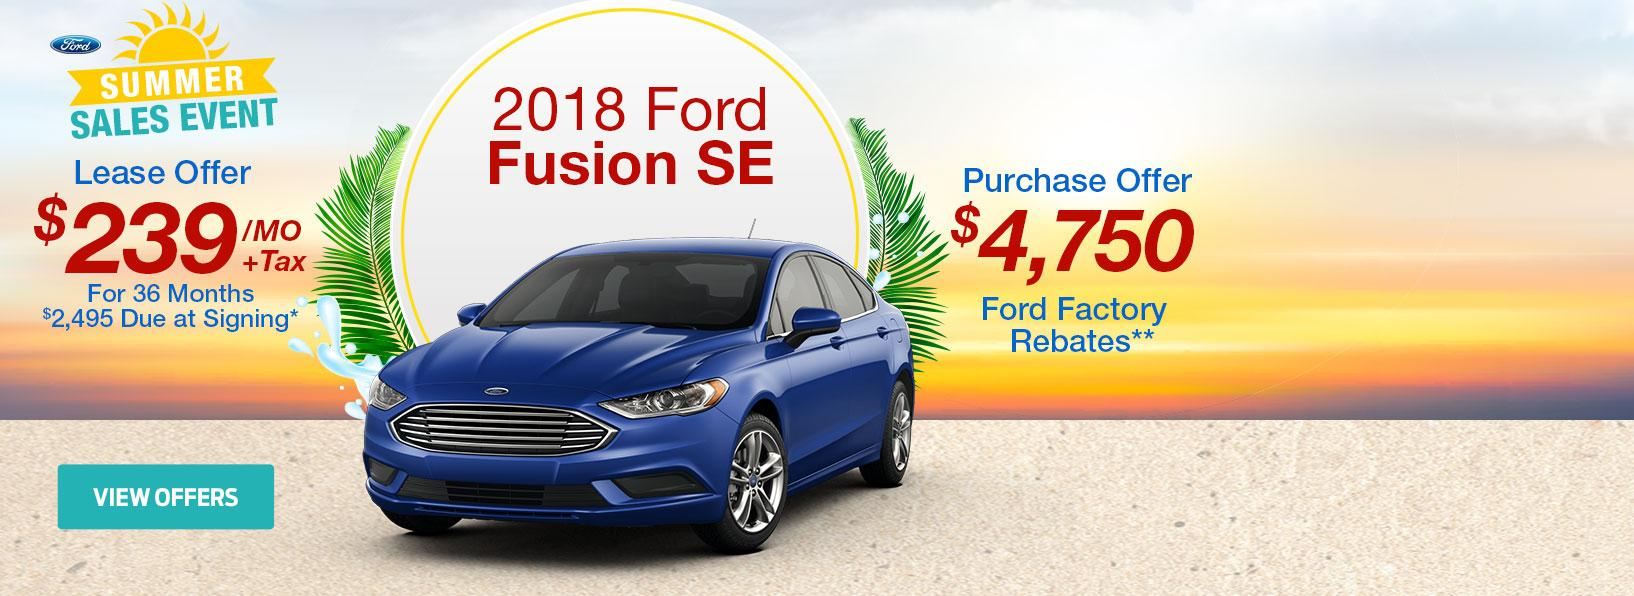 Summer Sales Event Fusion